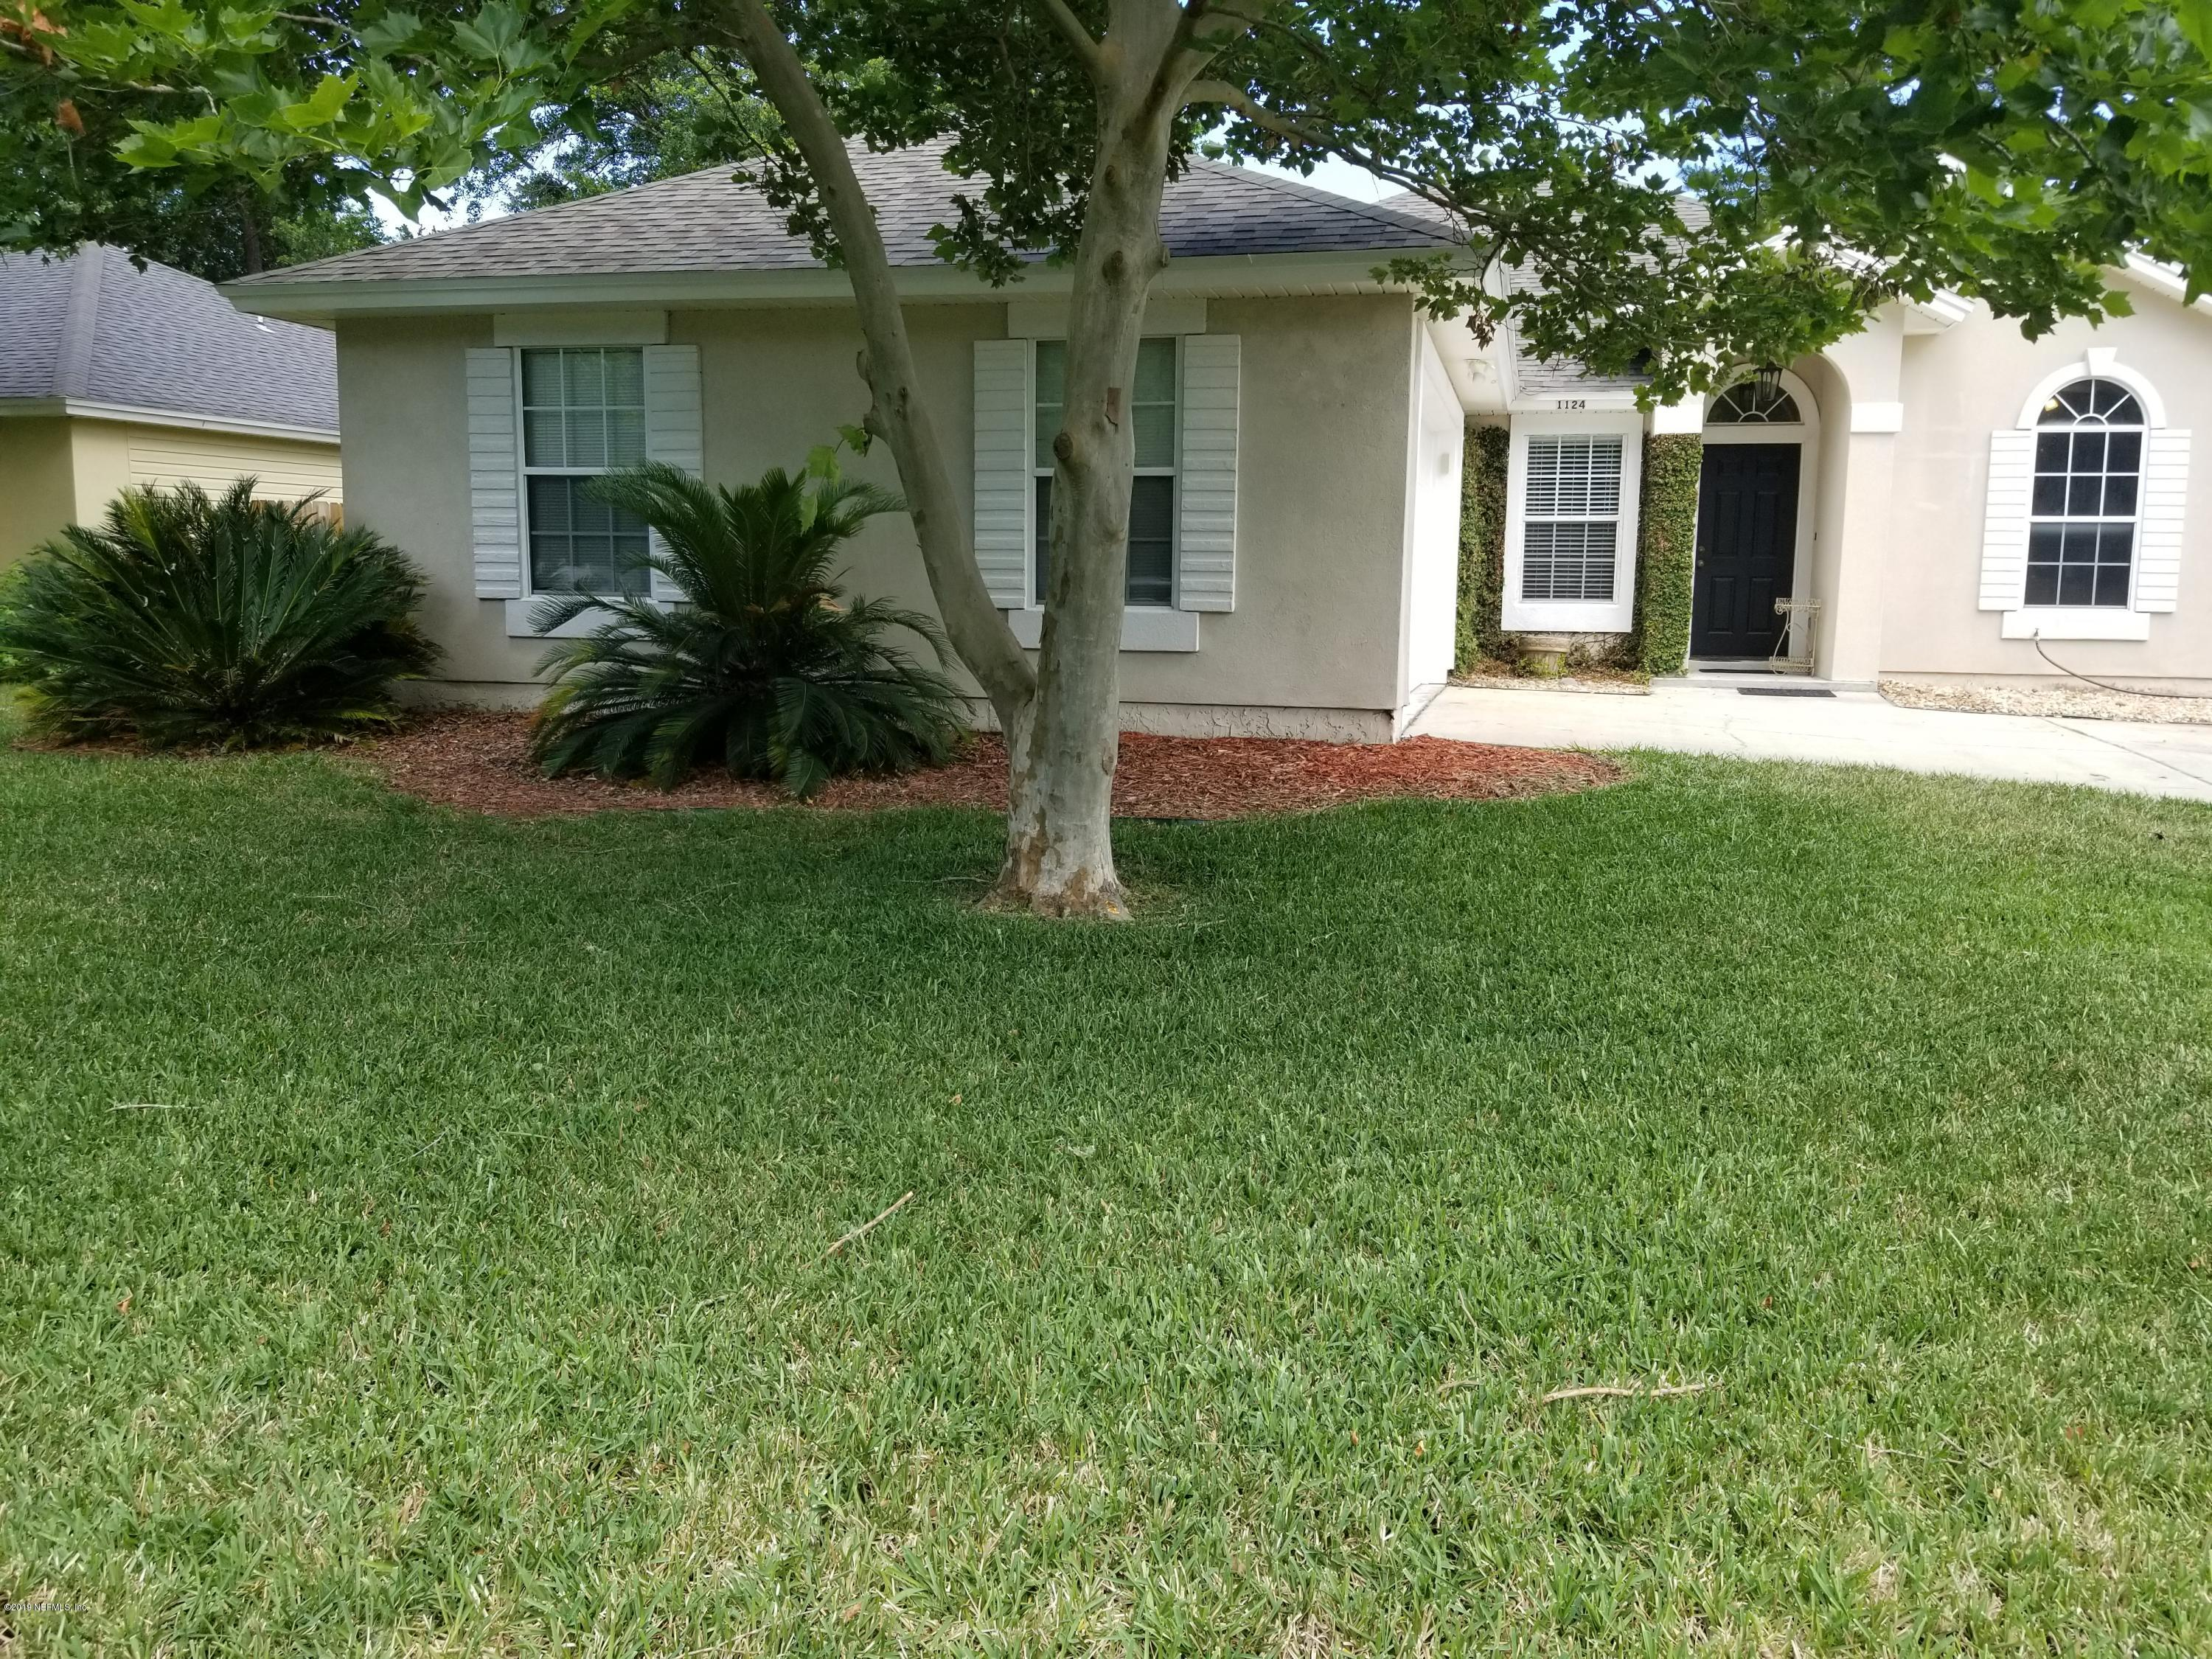 1124 Native Dancer Ct Jacksonville, Fl 32218